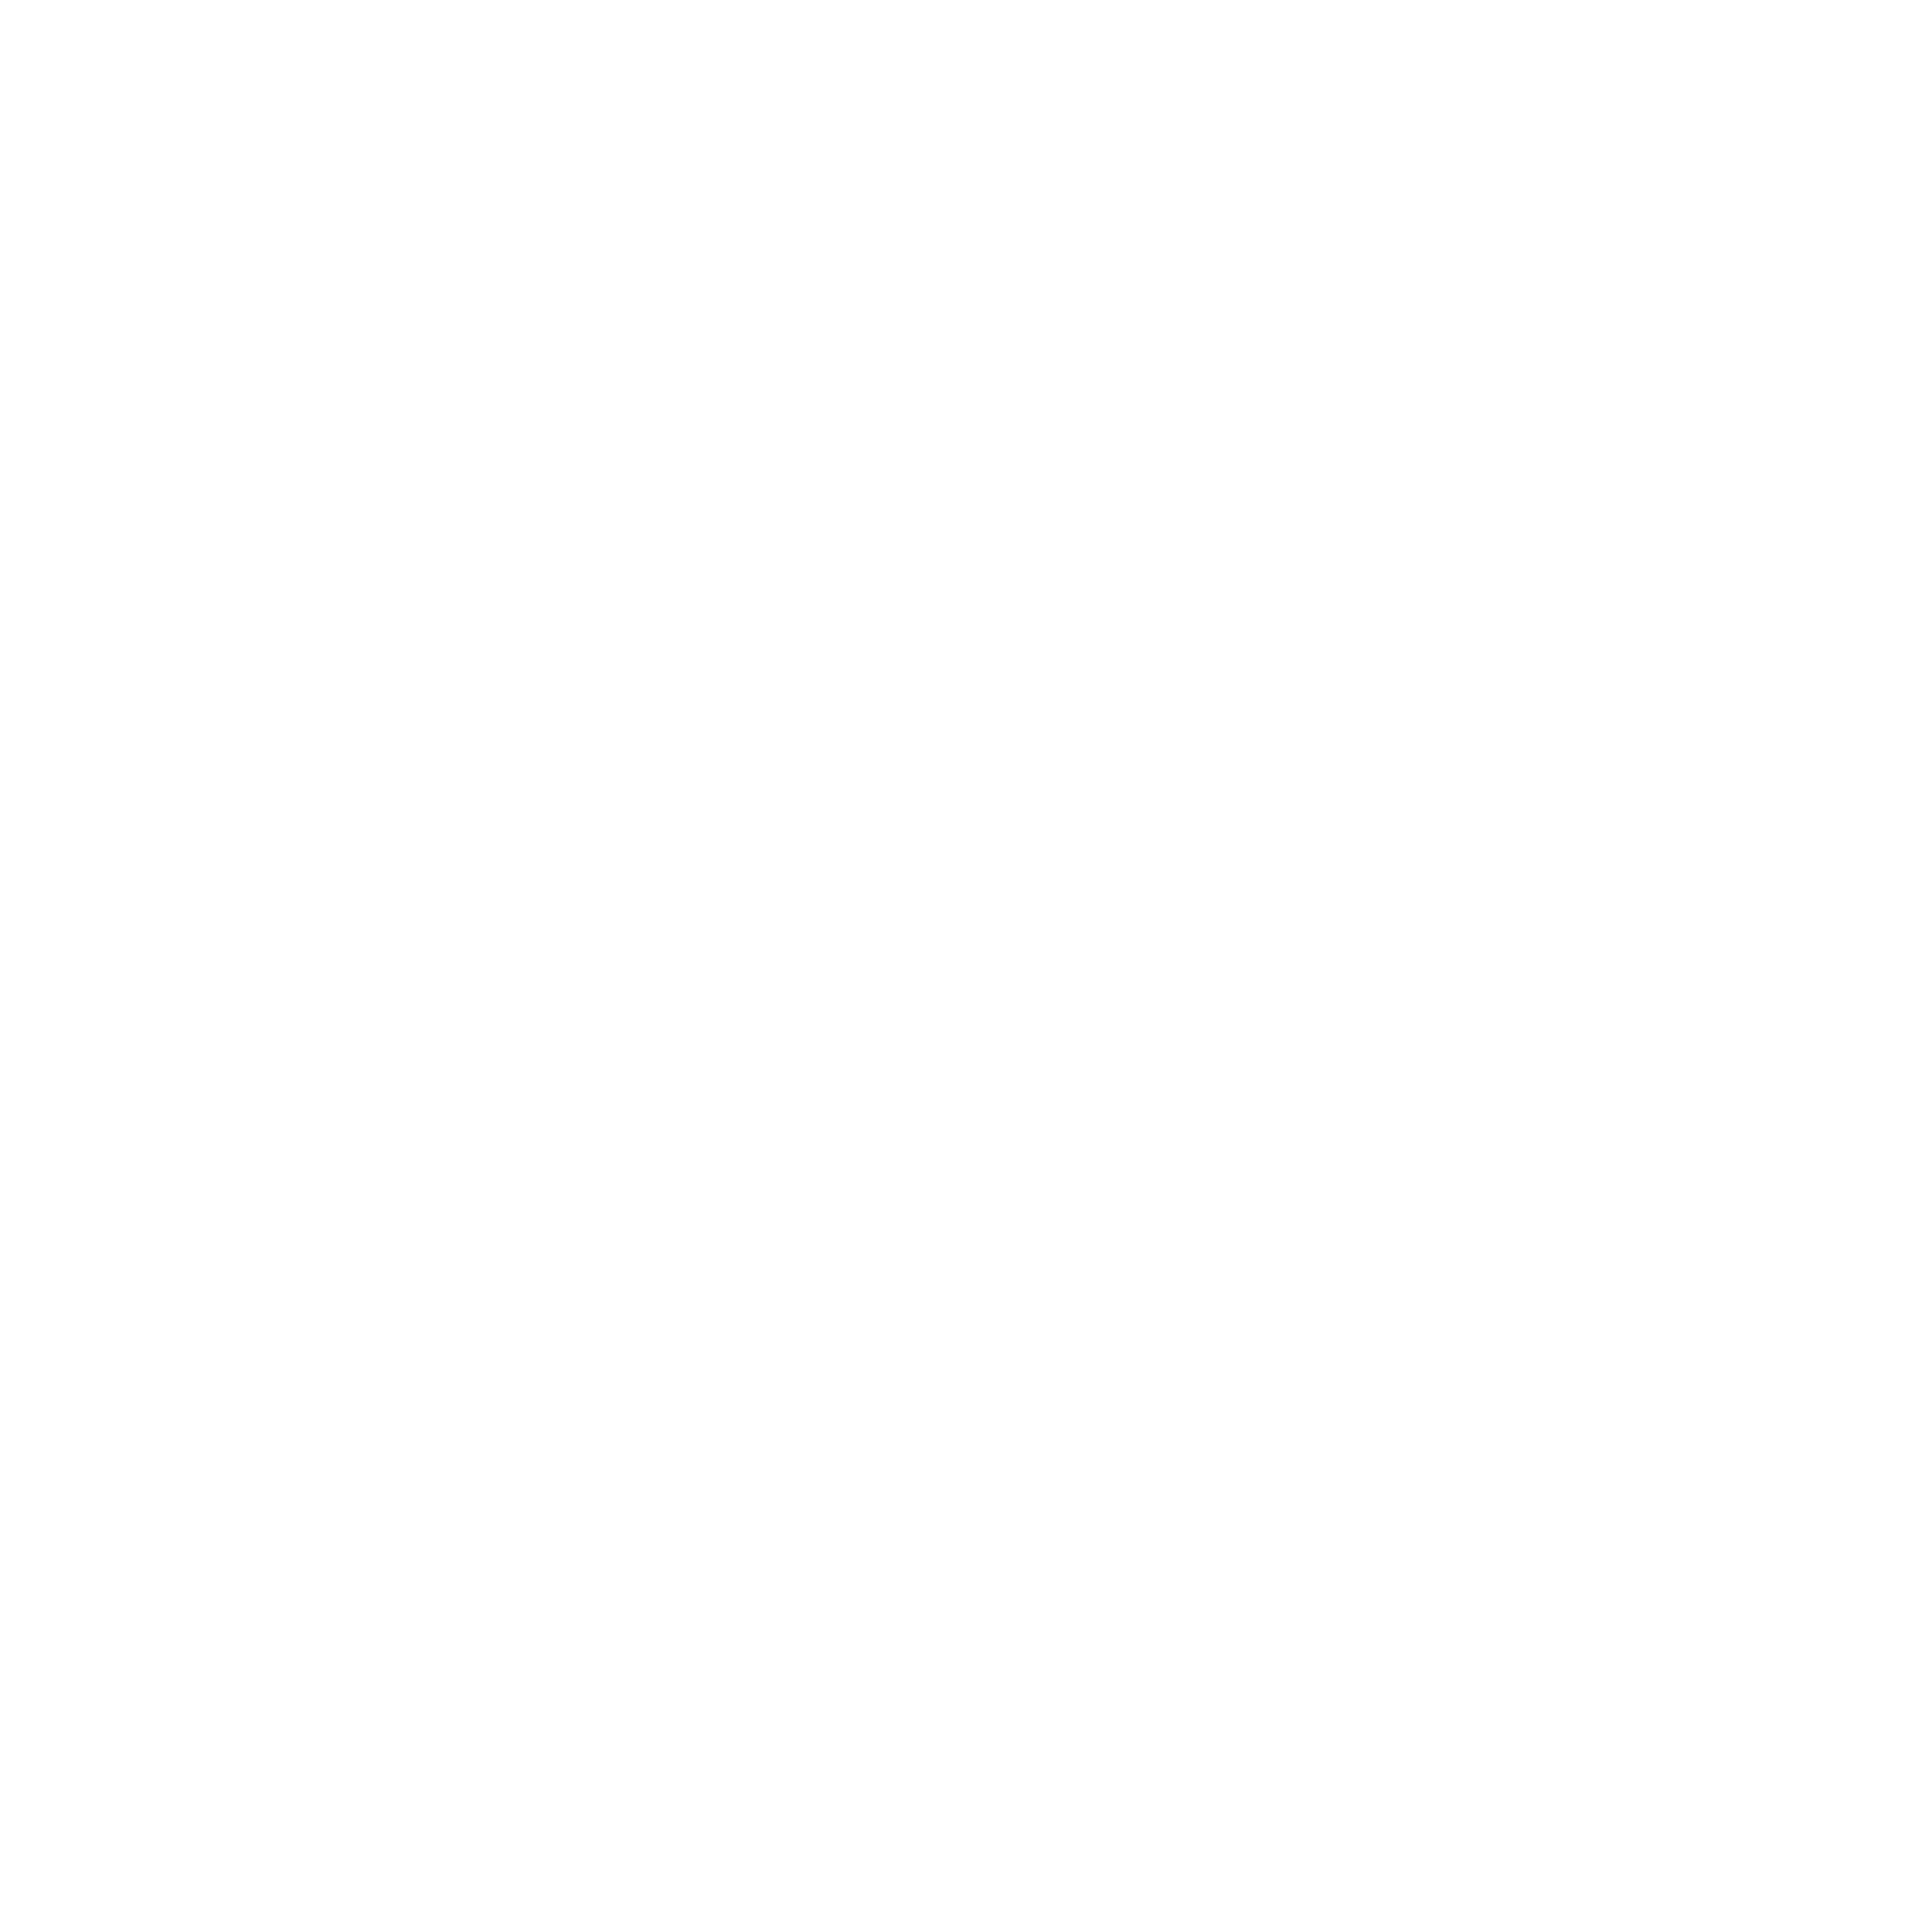 FS.MarketResearch.png